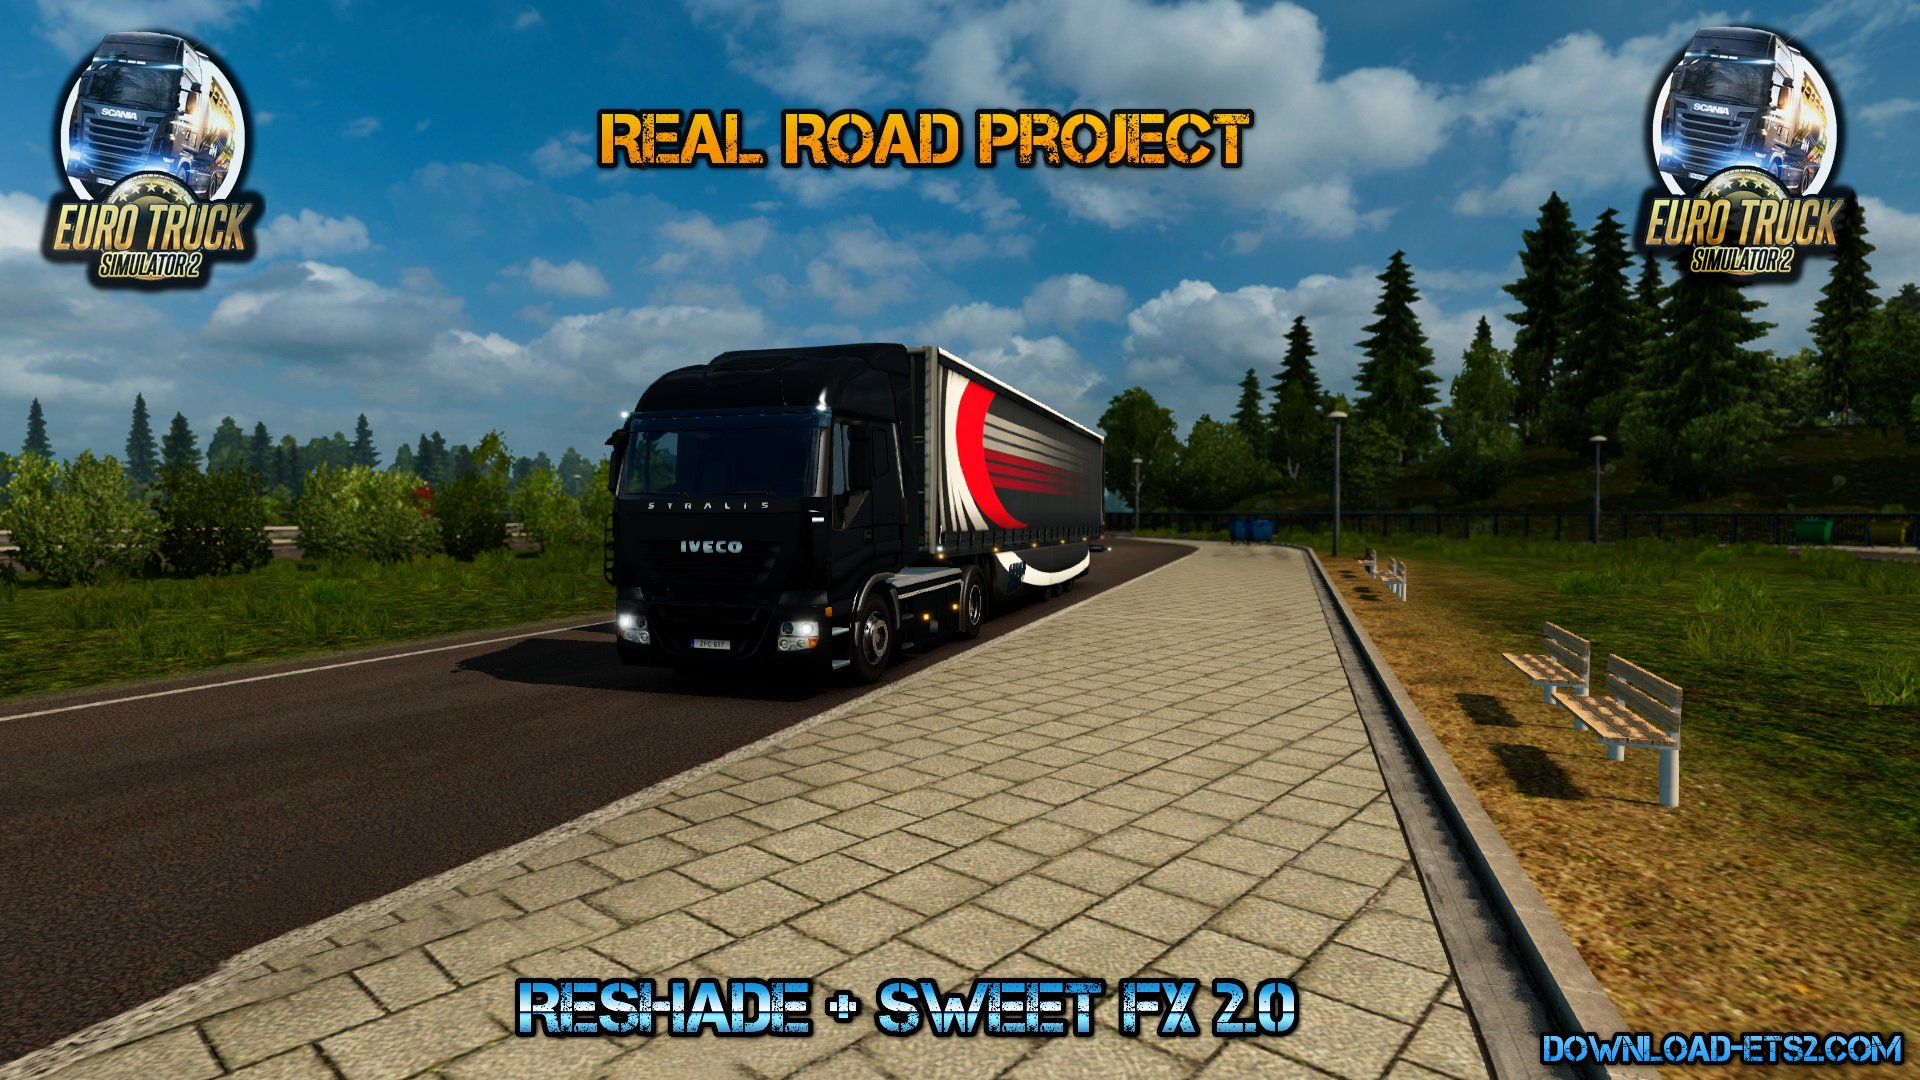 Real Road Project (Reshade + Sweet FX 2.0)